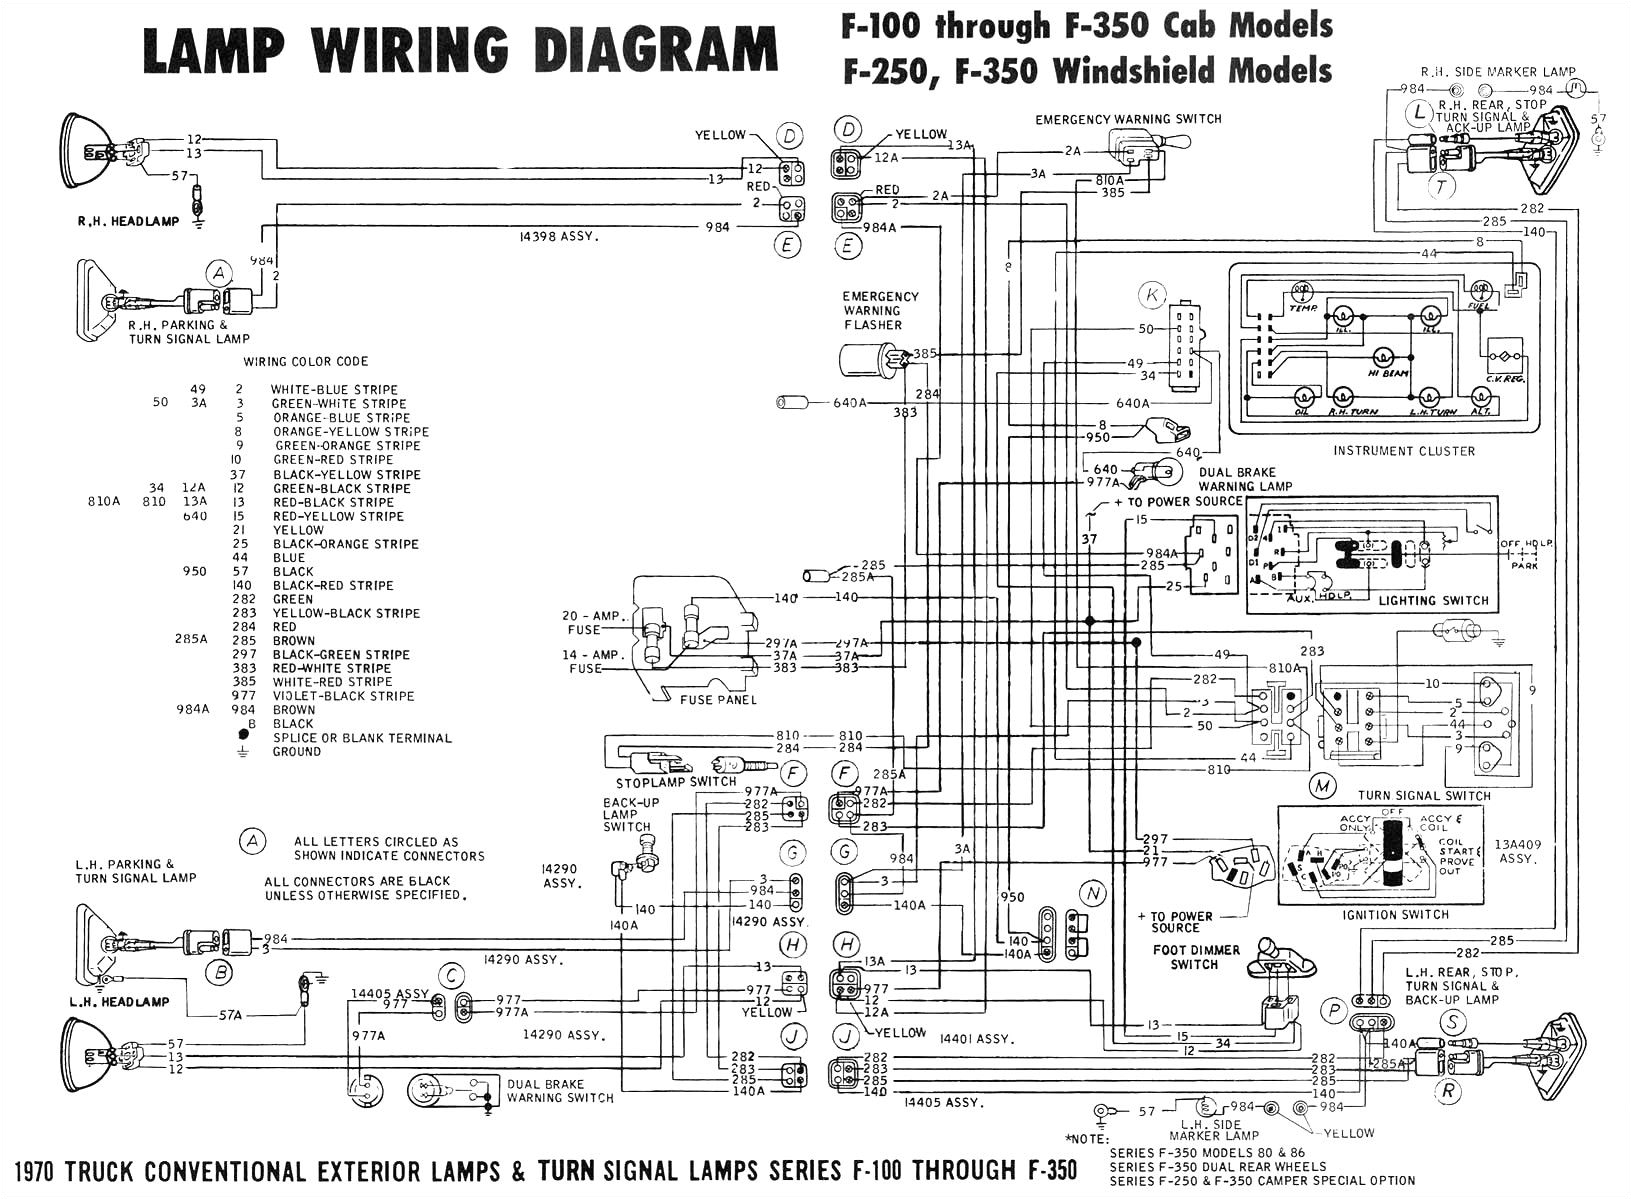 1997 toyota Corolla Wiring Diagram Pdf ford F250 Wiring Diagram for Trailer Light Electrical